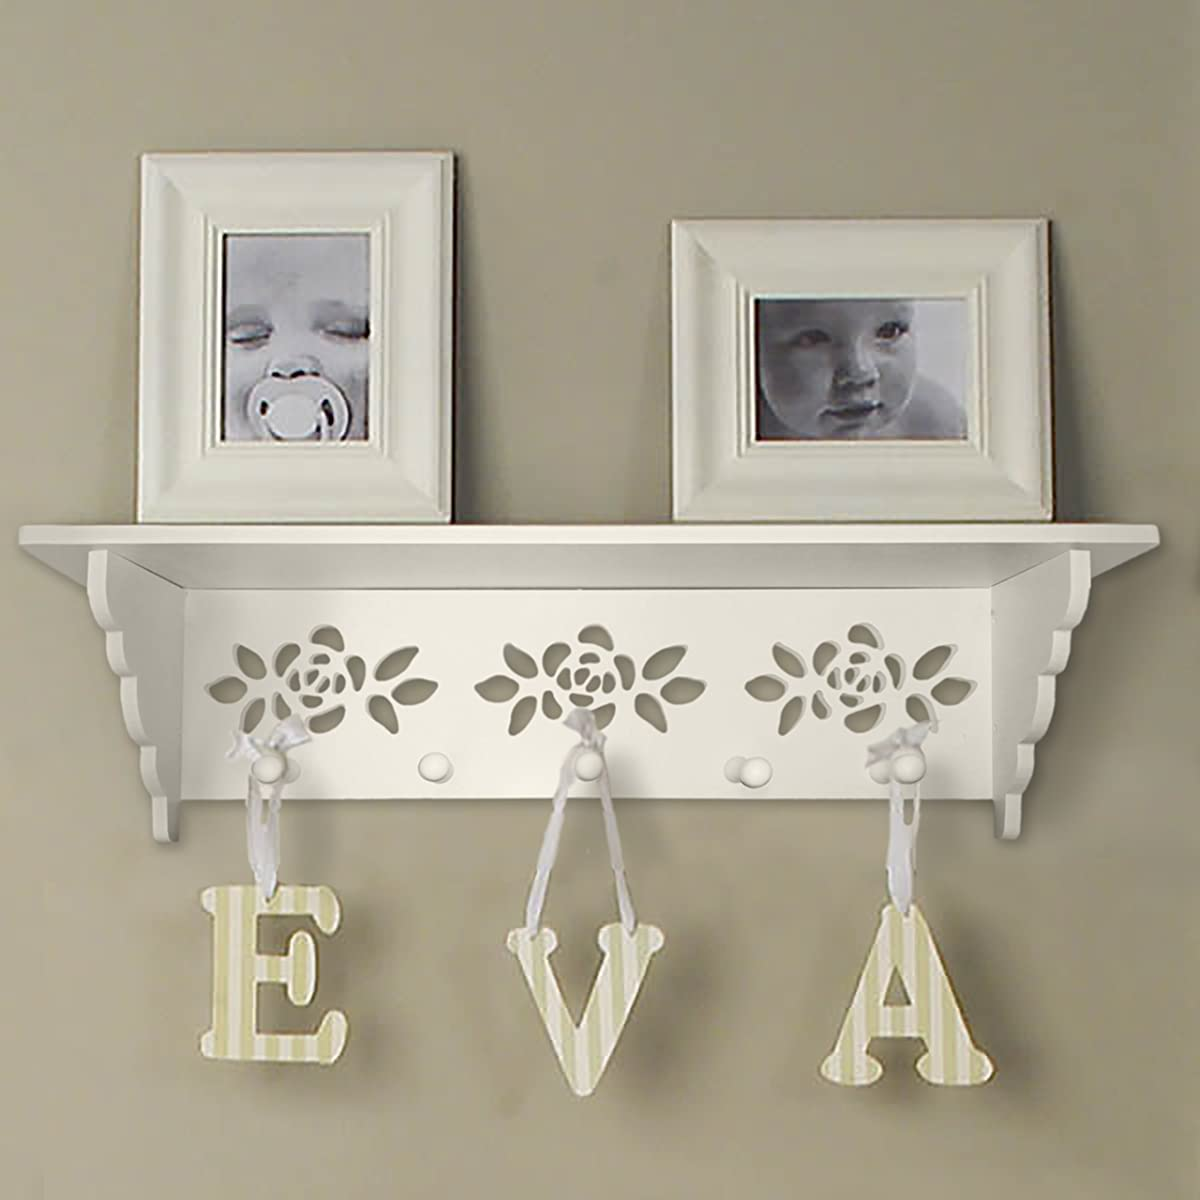 Hook Rack with Shelf on Top,White Laser Cut 5 Pegs Perfect for Your Keys or Hang Coat and Accessories Neatly on Top. Includes Mounting Hardware